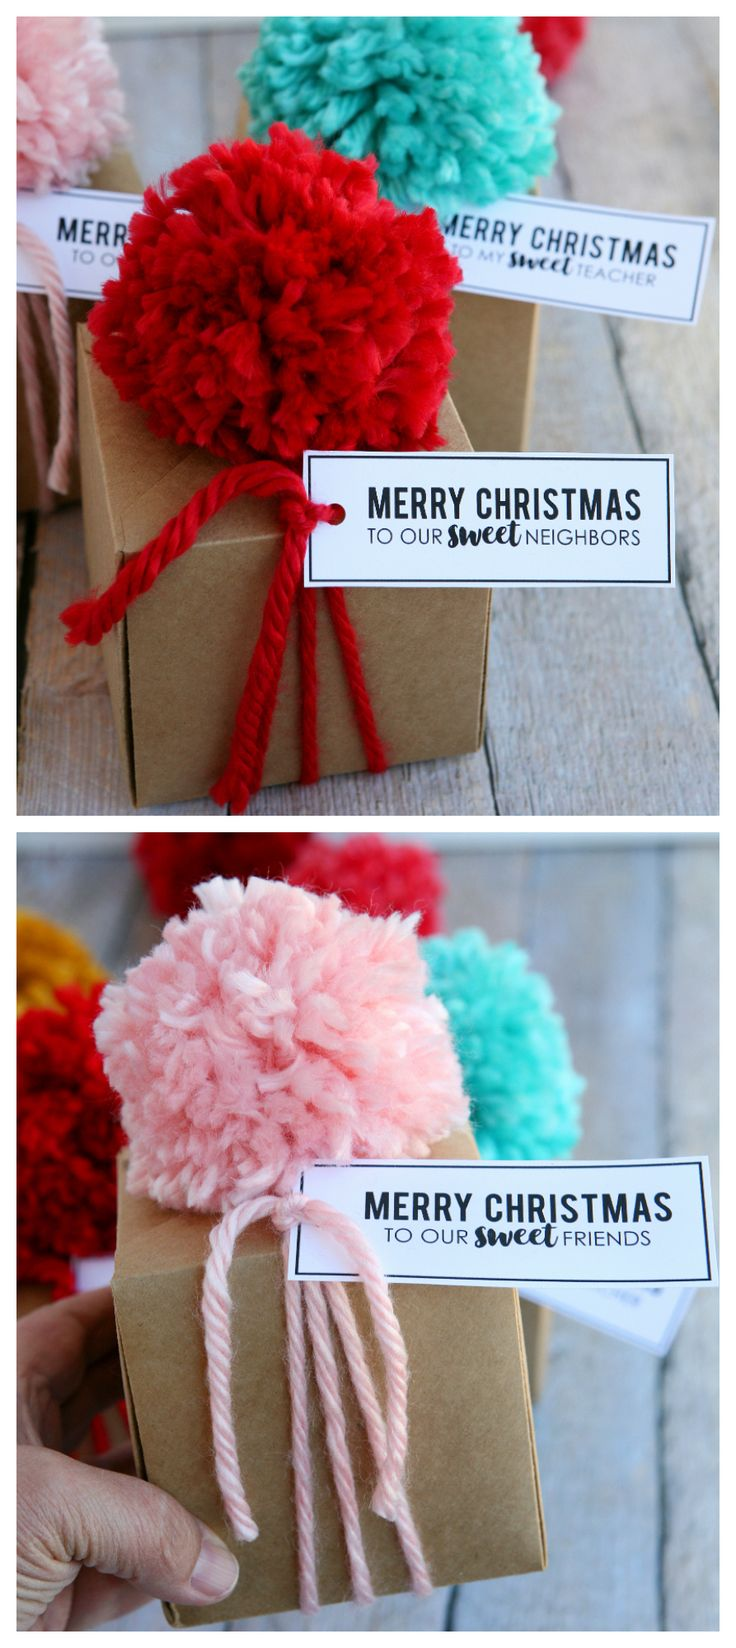 DIY Christmas Treat Boxes | So fun to make and includes the free printable tags for friends, teacher and neighbors!